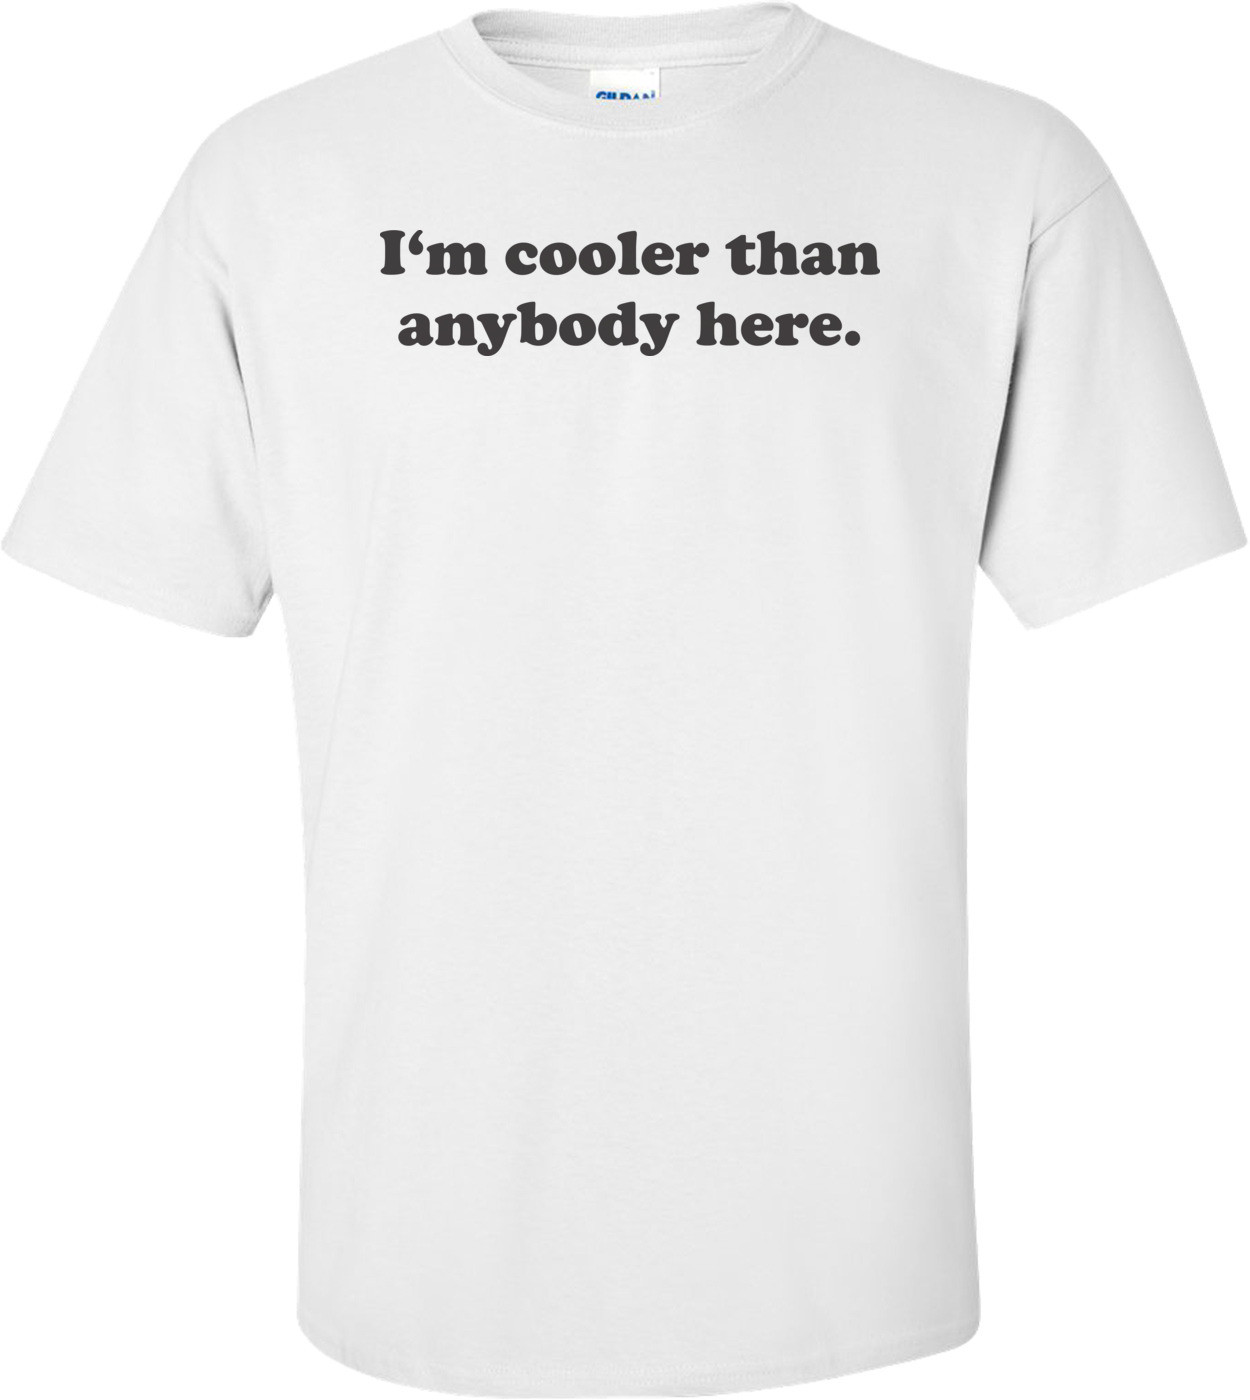 I'm Cooler Than Anybody Here T-shirt